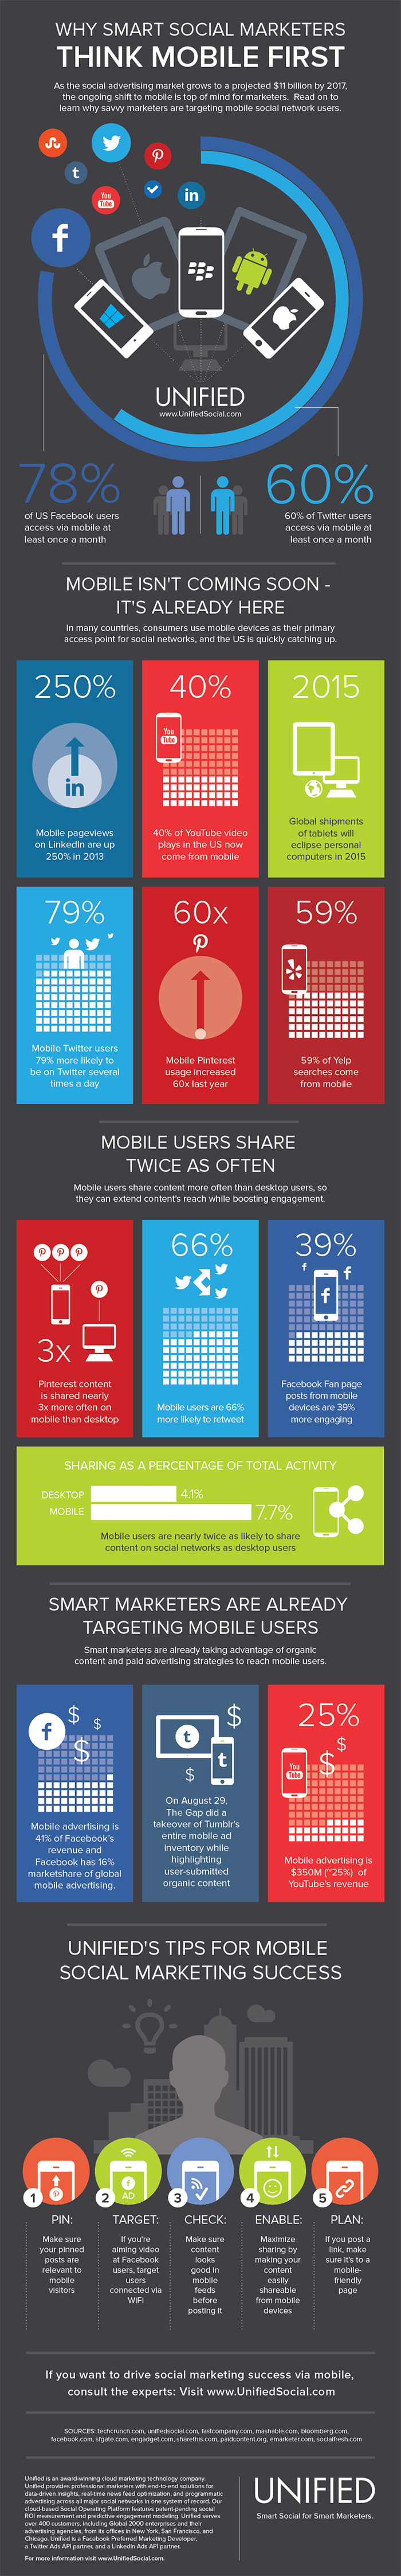 mobile marketing trends, solutions, companies infographic